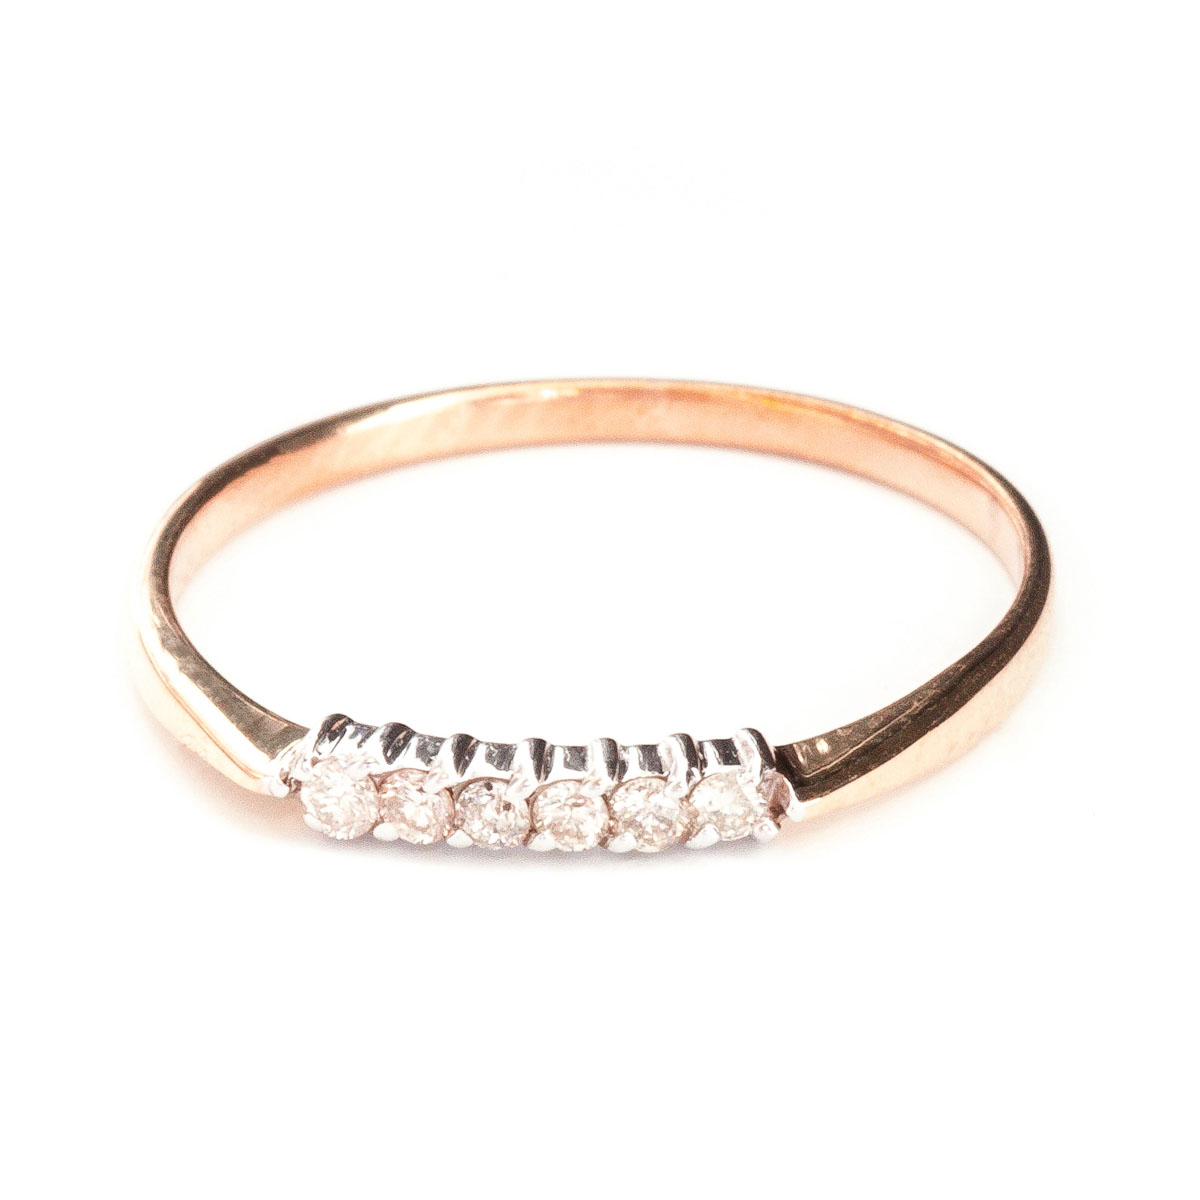 Round Cut Diamond Ring 0.1 ctw in 18ct Rose Gold